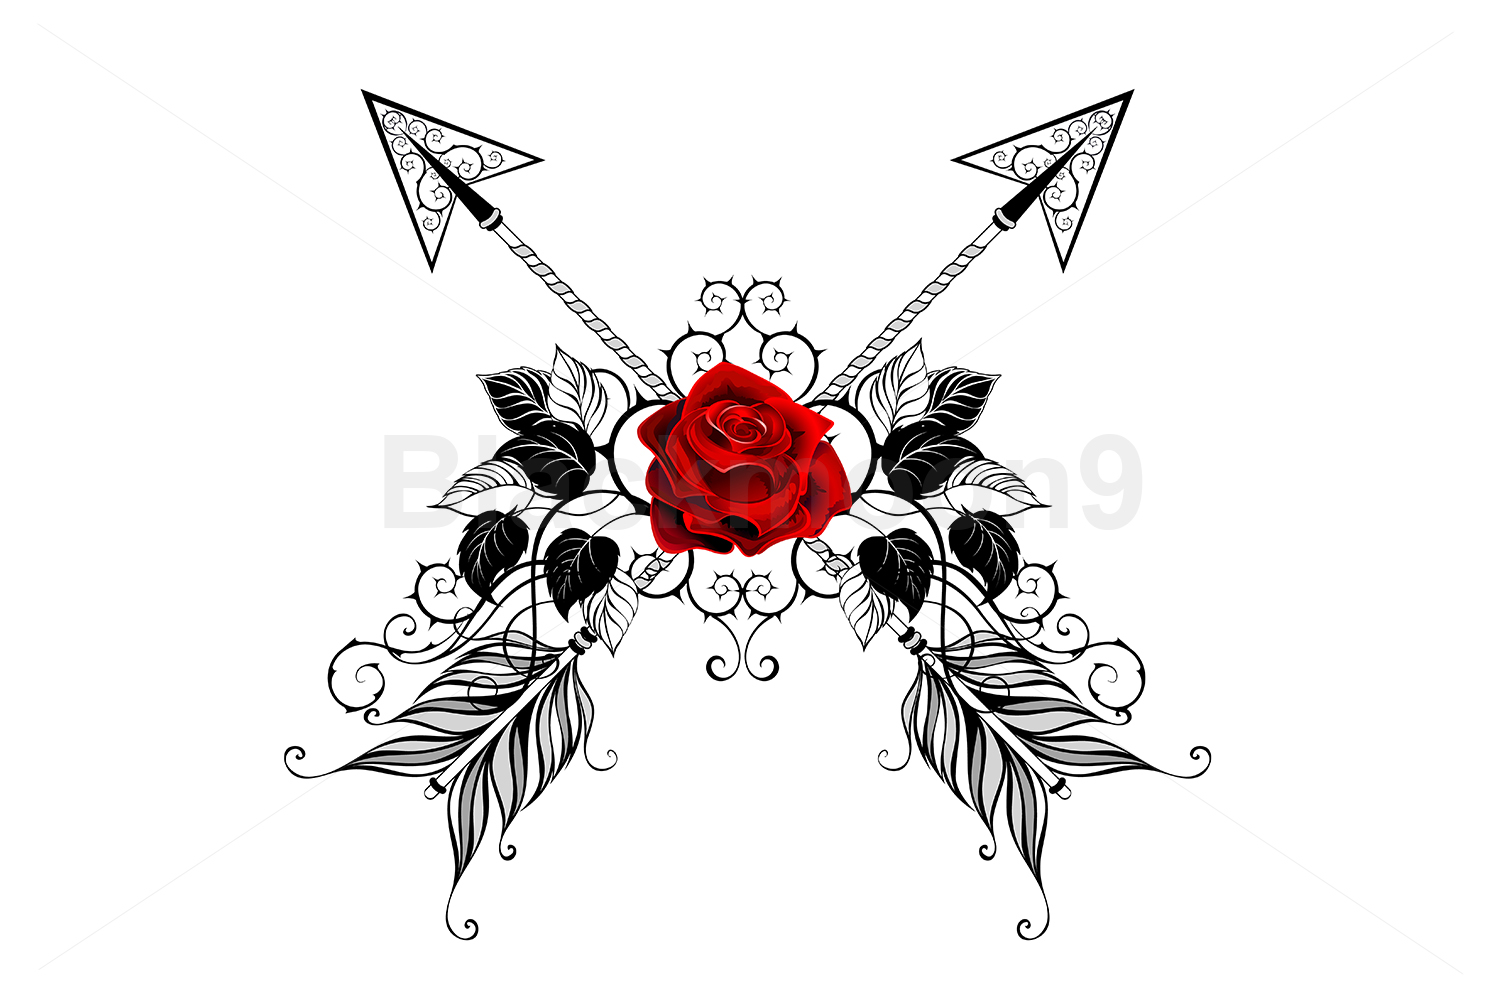 Download Free Black Arrows With Red Roses Graphic By Blackmoon9 Creative Fabrica for Cricut Explore, Silhouette and other cutting machines.